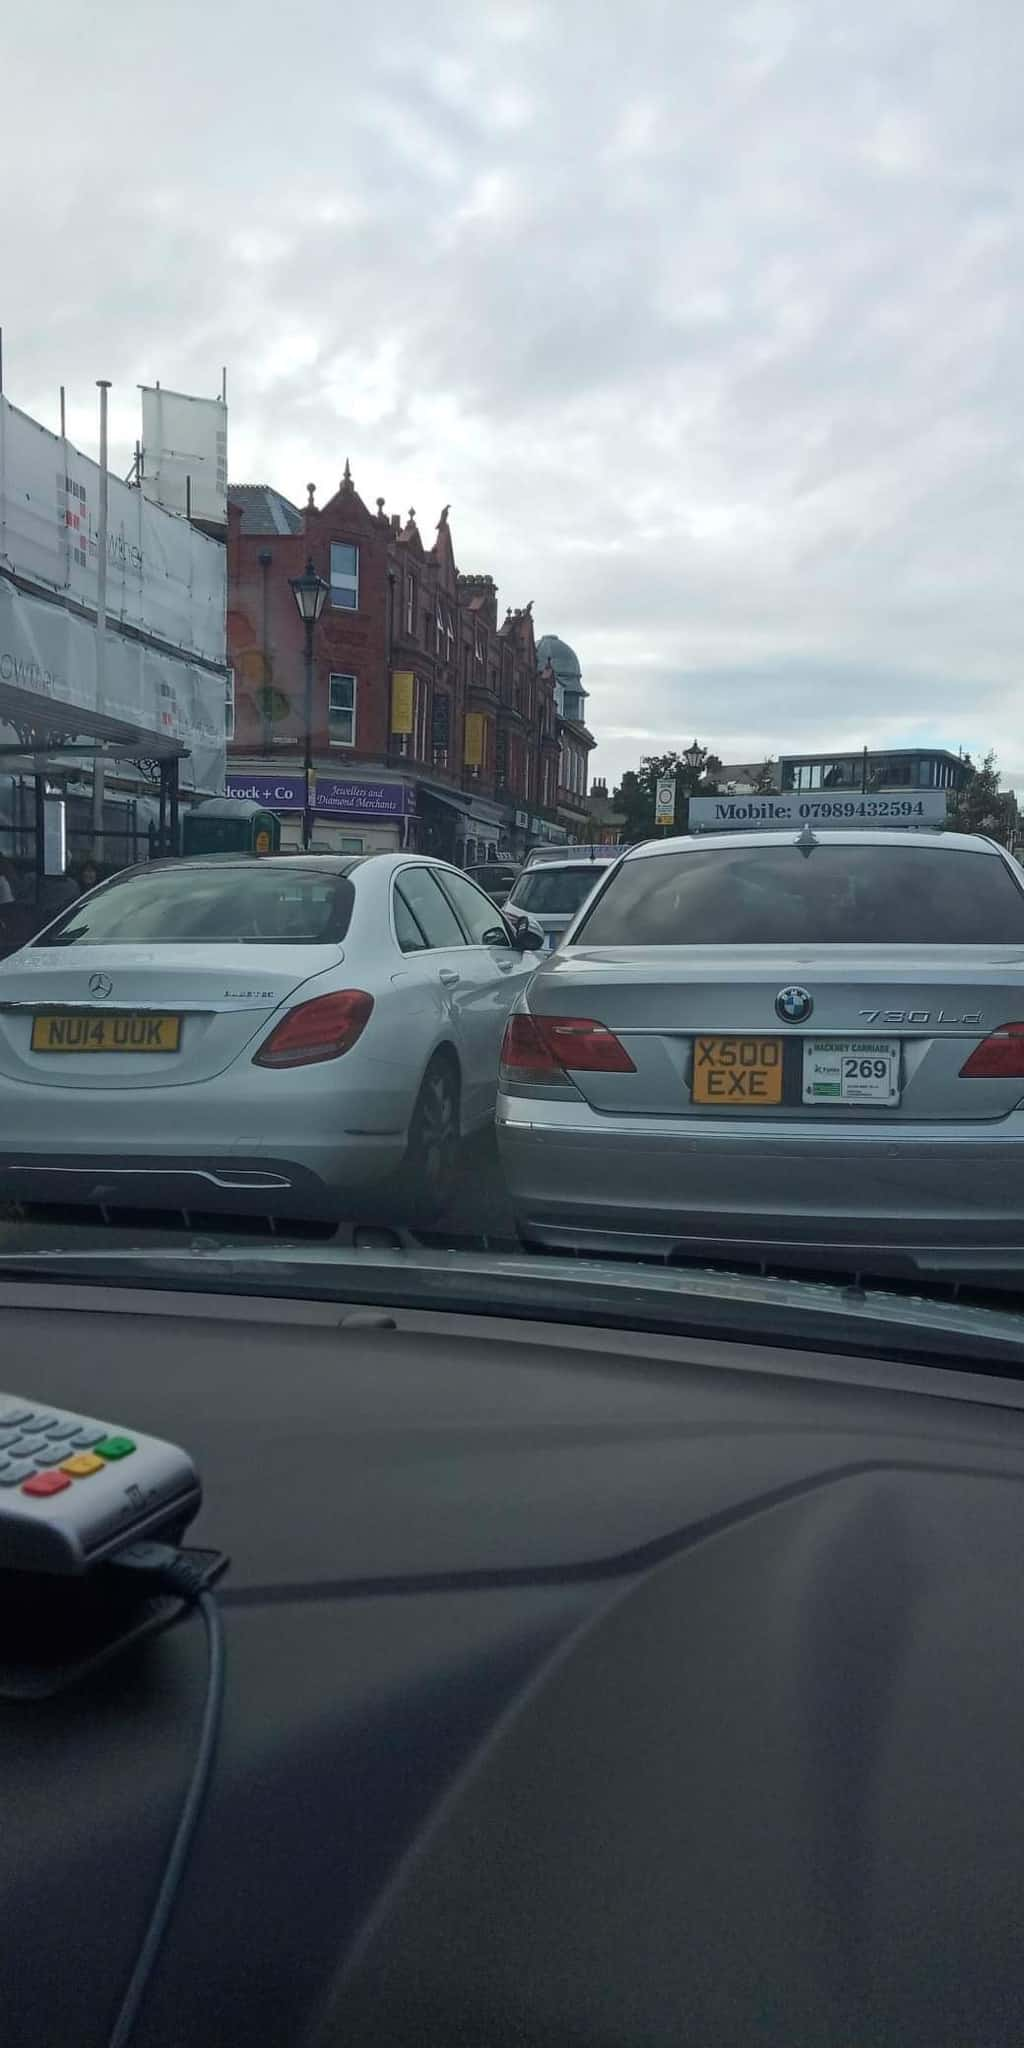 Selfish Parking Causing Misery for Cabbies in Lytham